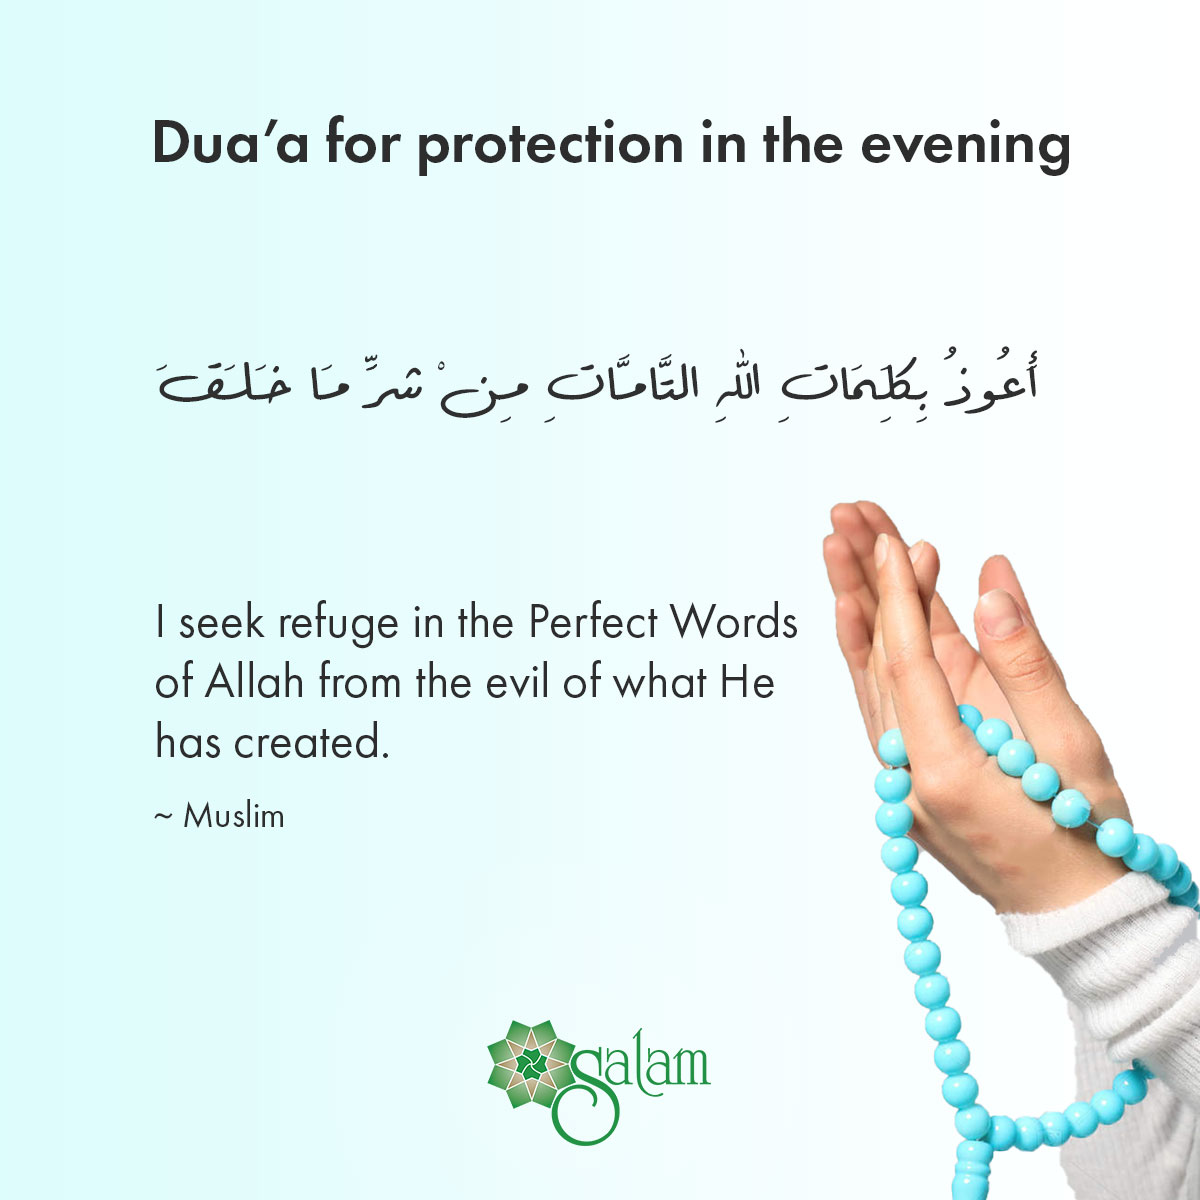 Duaa for protection in the evening